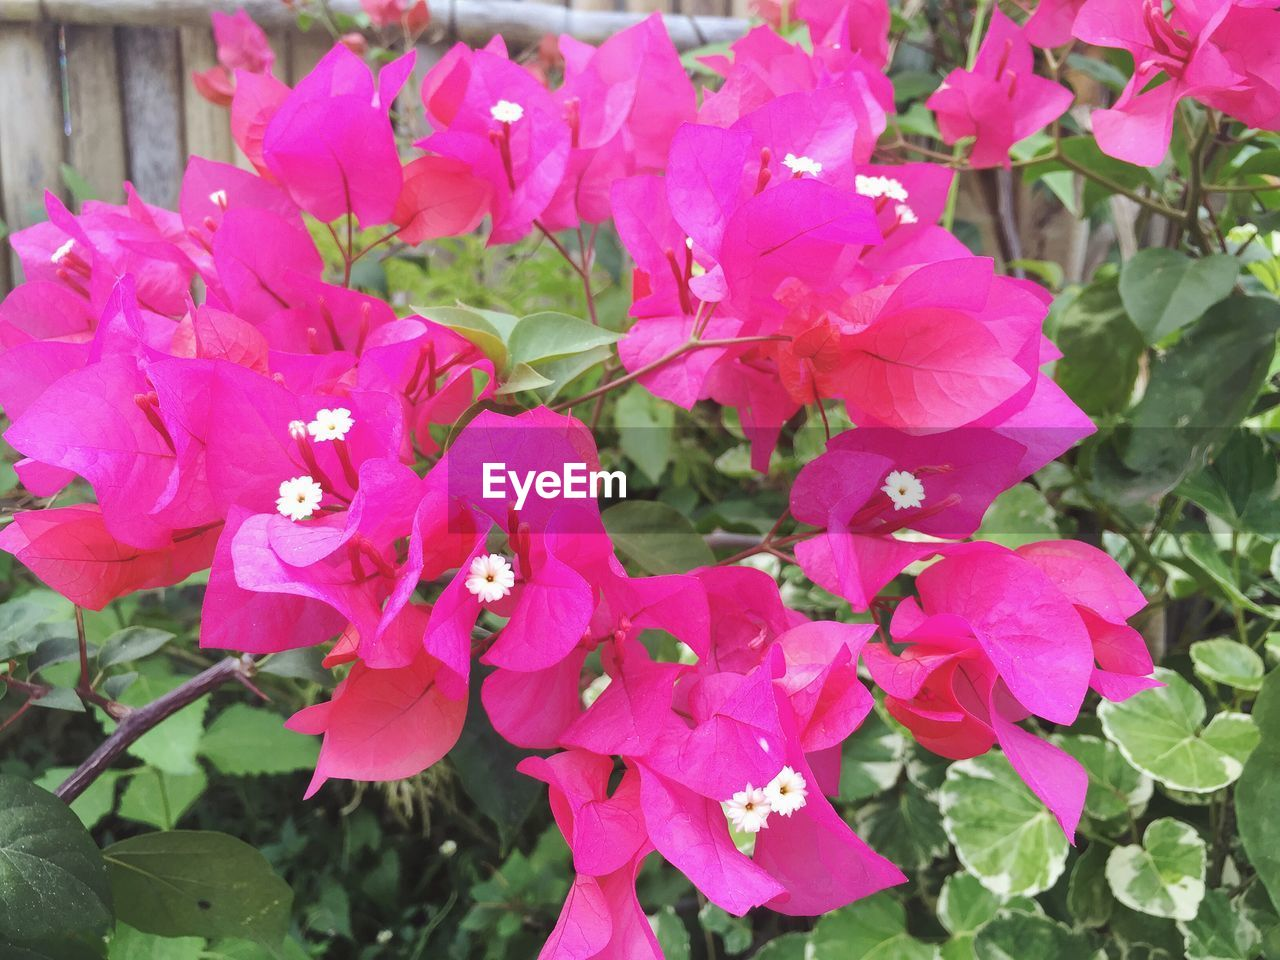 Bougainvilleas Blooming On Tree Outdoors